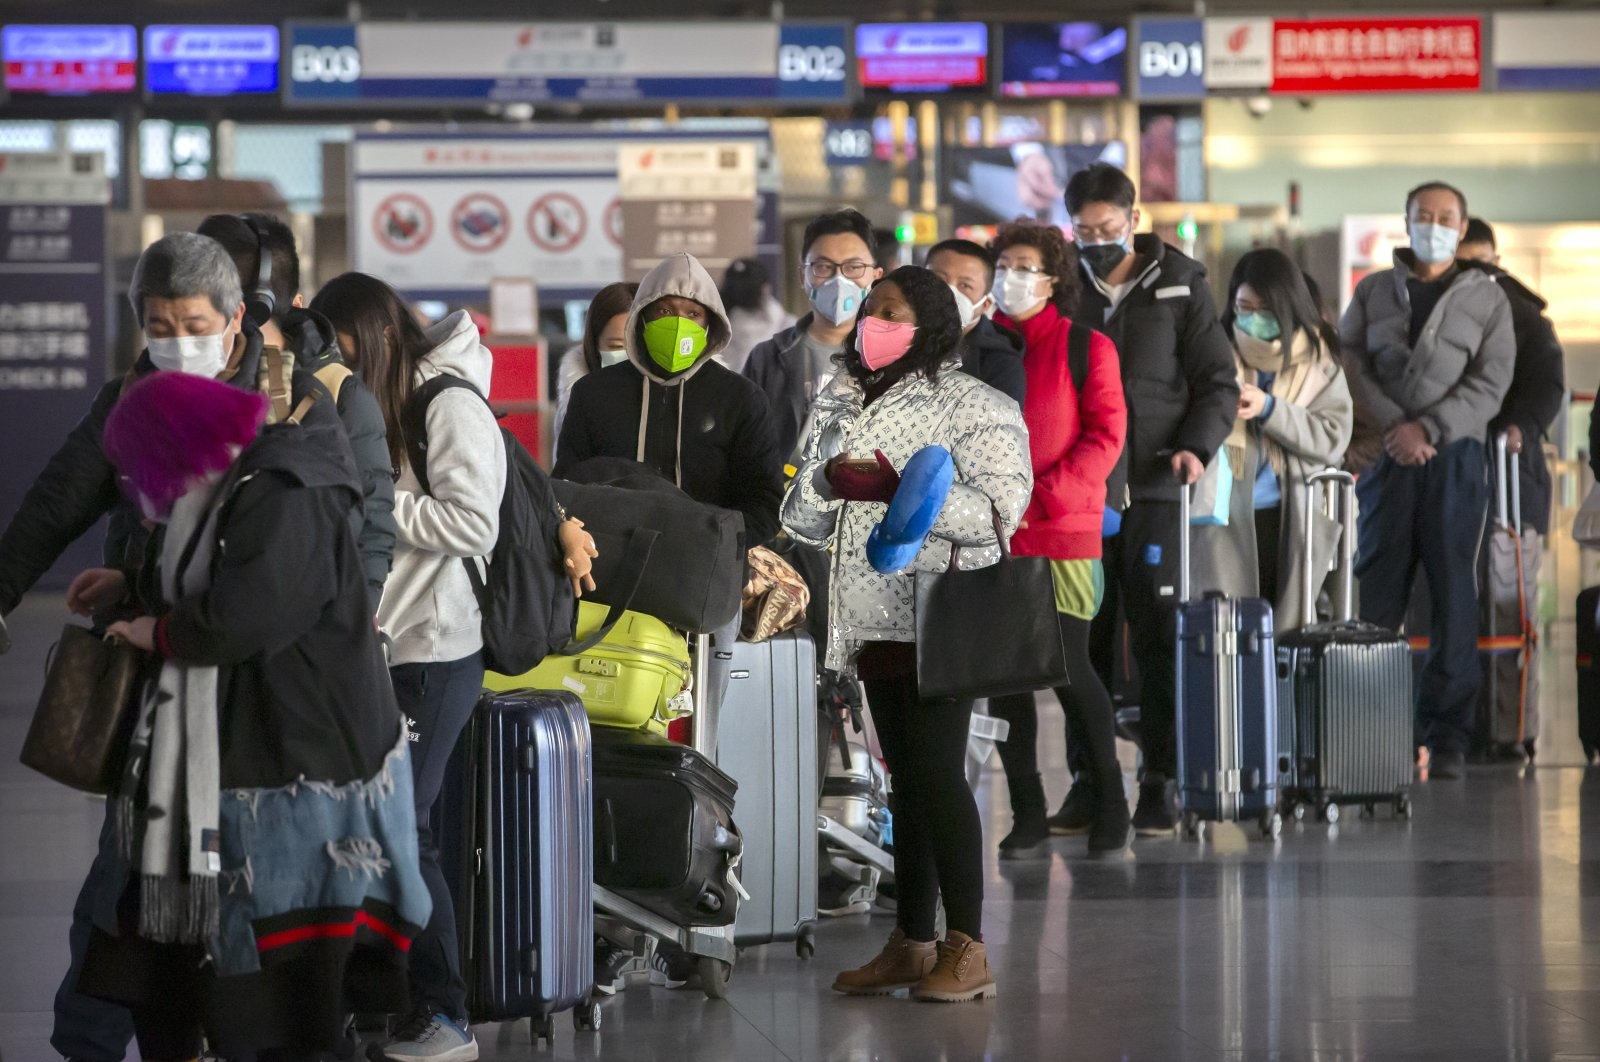 Travelers wearing face masks line up to check in for a flight at Beijing Capital International Airport in Beijing, Jan. 30, 2020. (AP Photo)